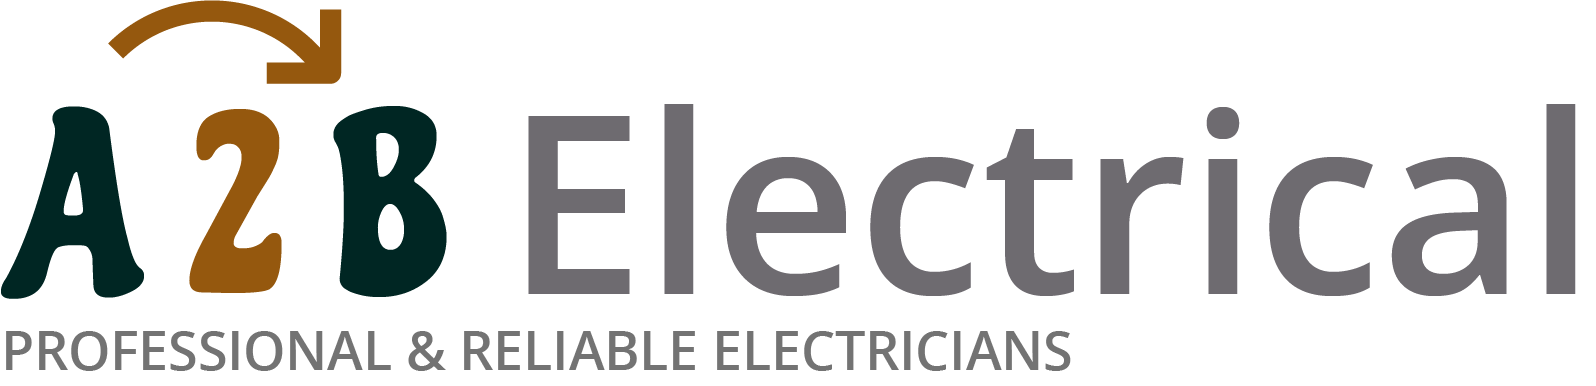 If you have electrical wiring problems in Stockwell, we can provide an electrician to have a look for you.